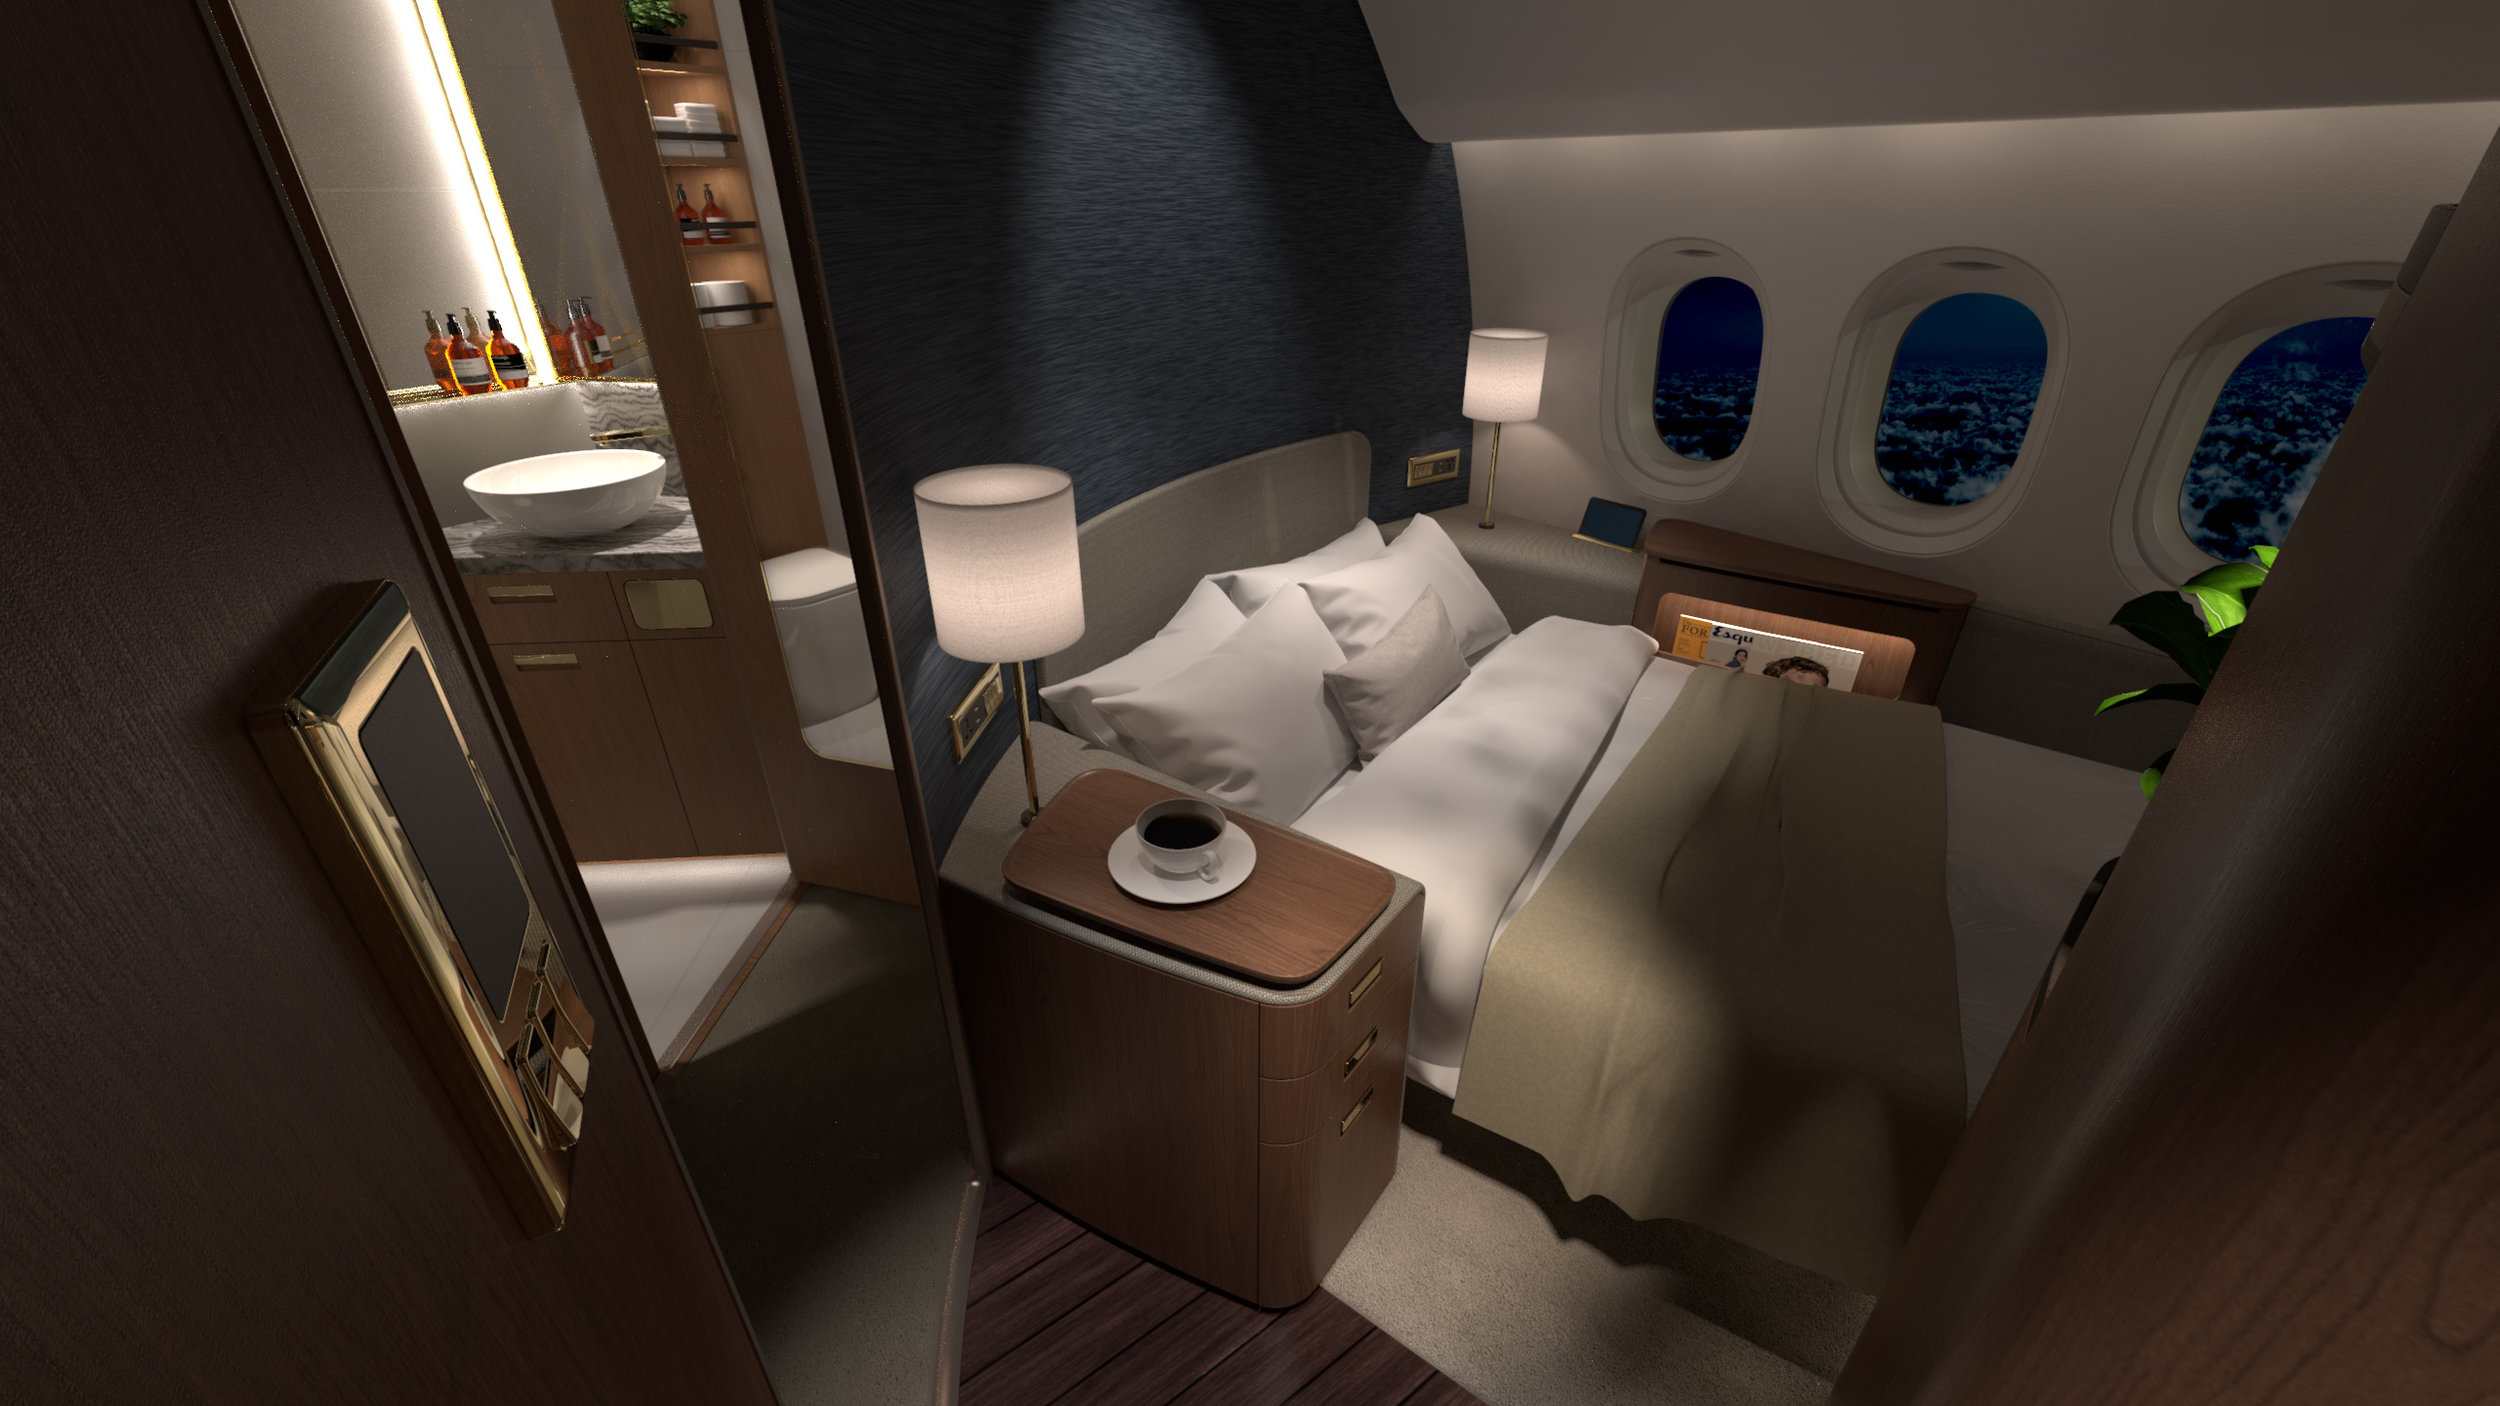 Ultimate Seclusion - The addition of a private lavatory access creates the ultimate luxury in spaciousness and privacy, enabling airlines to compete to a certain degree with private jets.